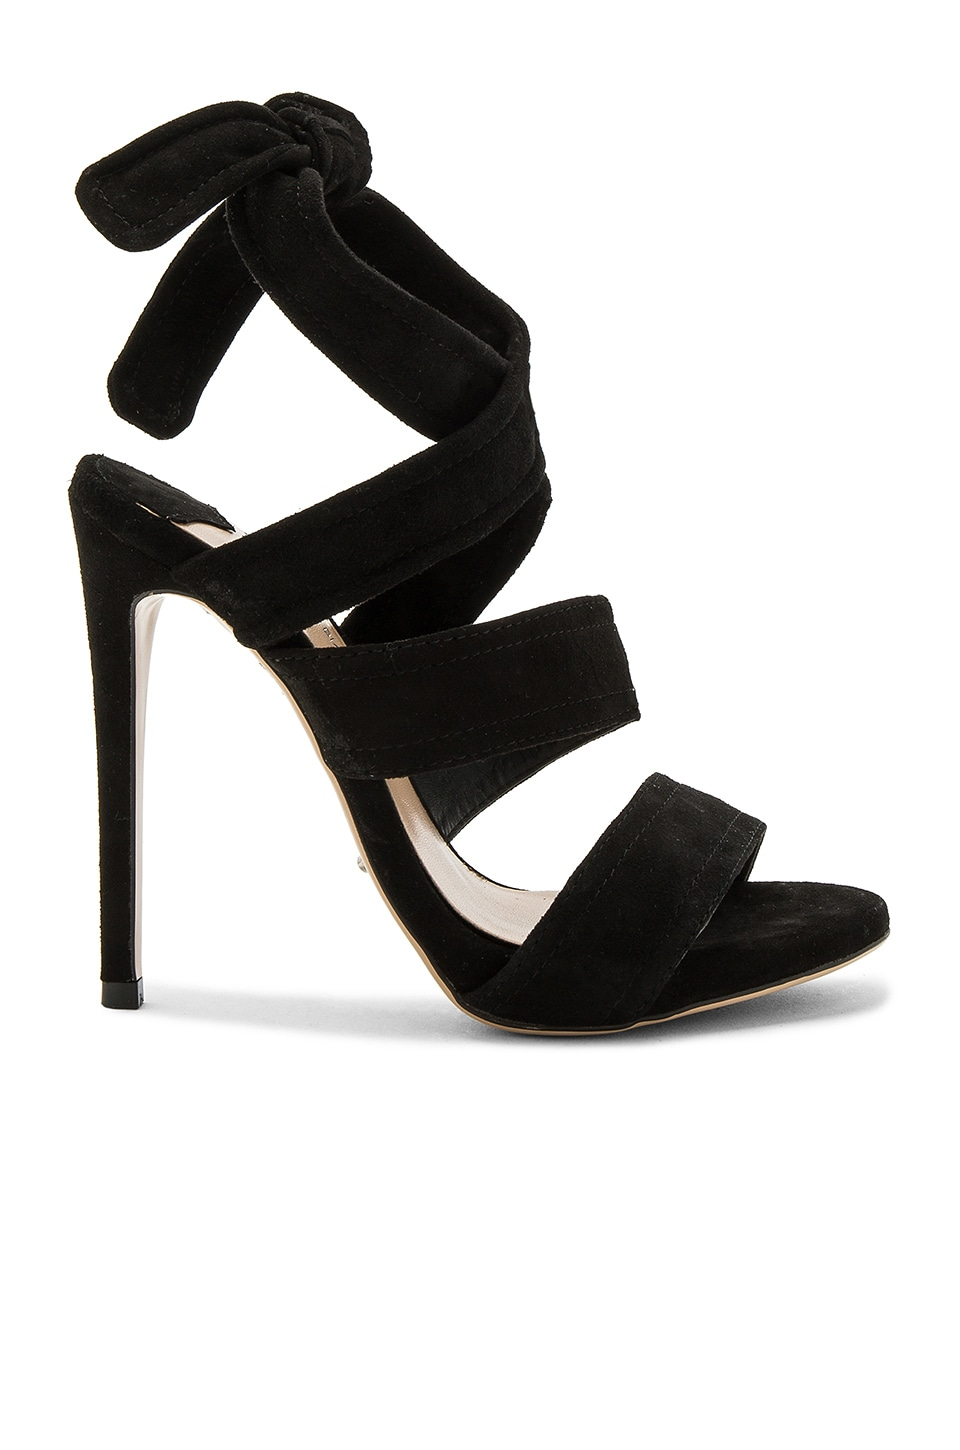 Tony Bianco April Heel in Black Suede